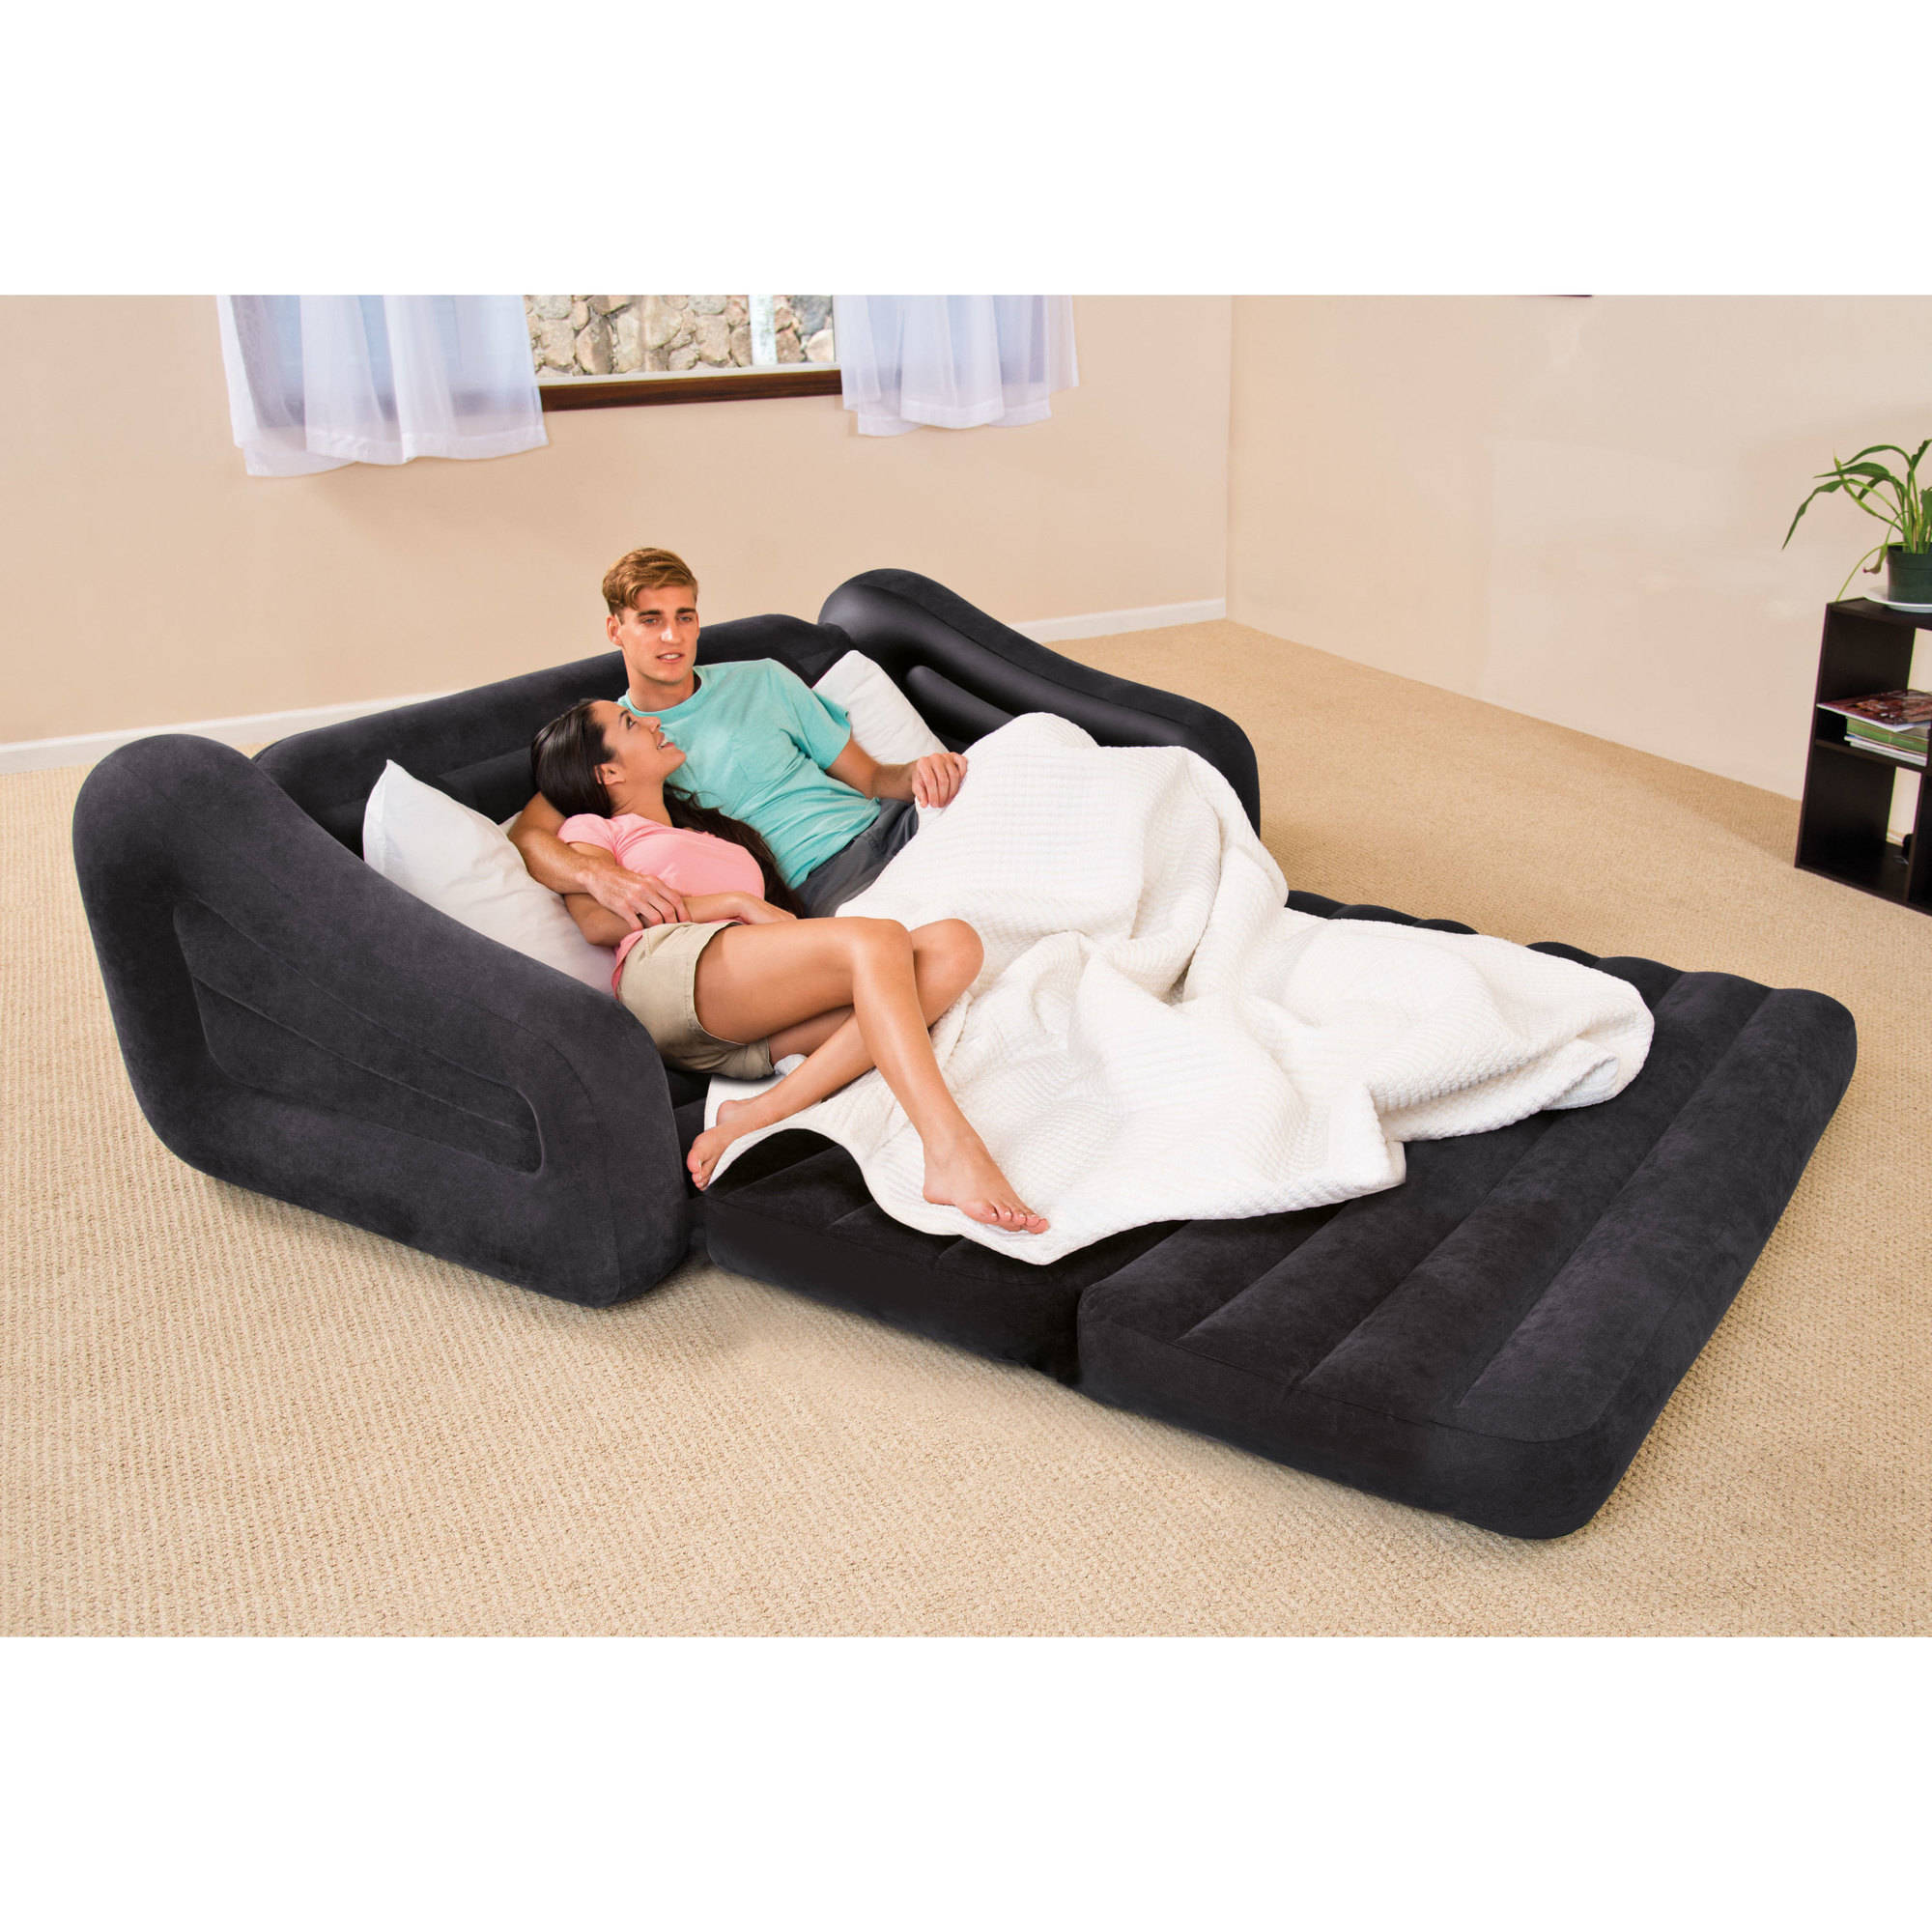 Inflatable Pull Out Air Sofa Bed Mattress Sleeper Blow Up Couch Chair Queen New Ebay